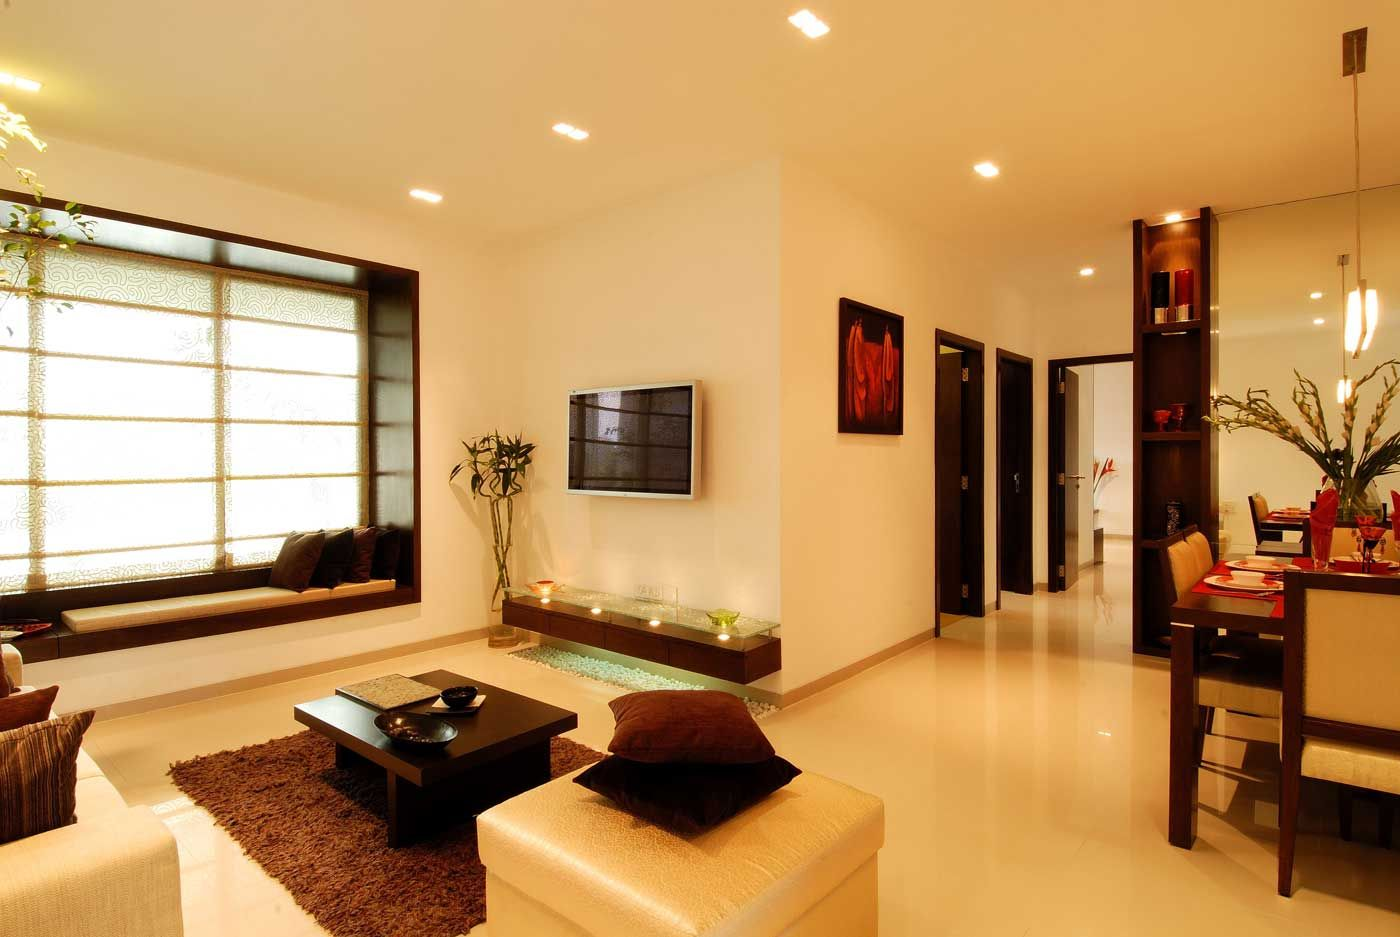 Properties in andheri flats in andheri east mumbai for 3 bedroom flat interior designs